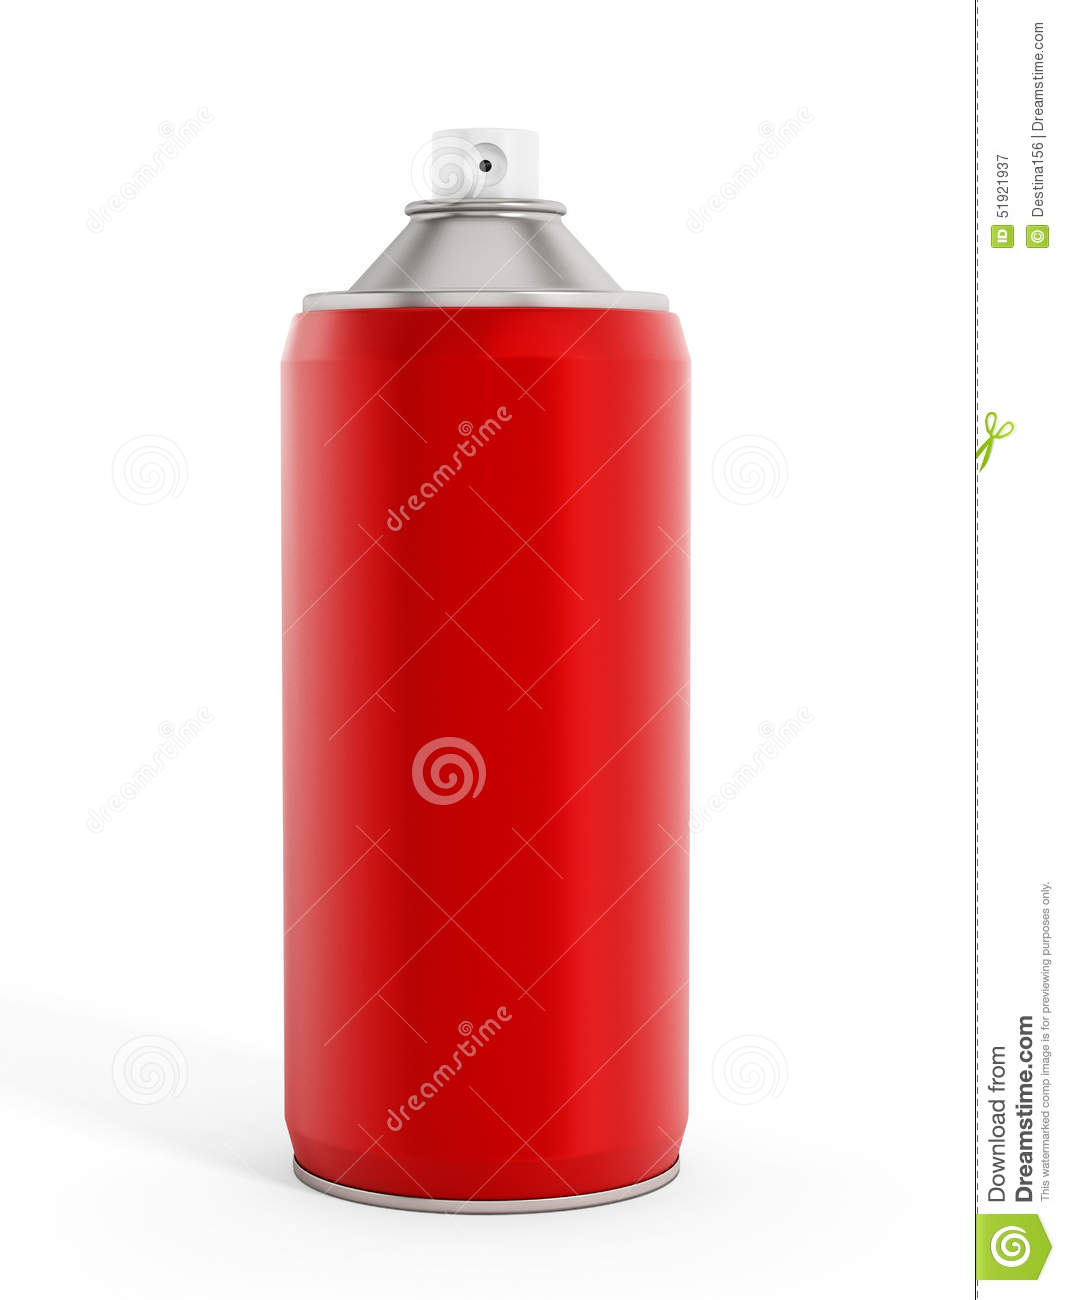 Red spray paint can stock illustration image of metallic 51921937 Paint with spray can